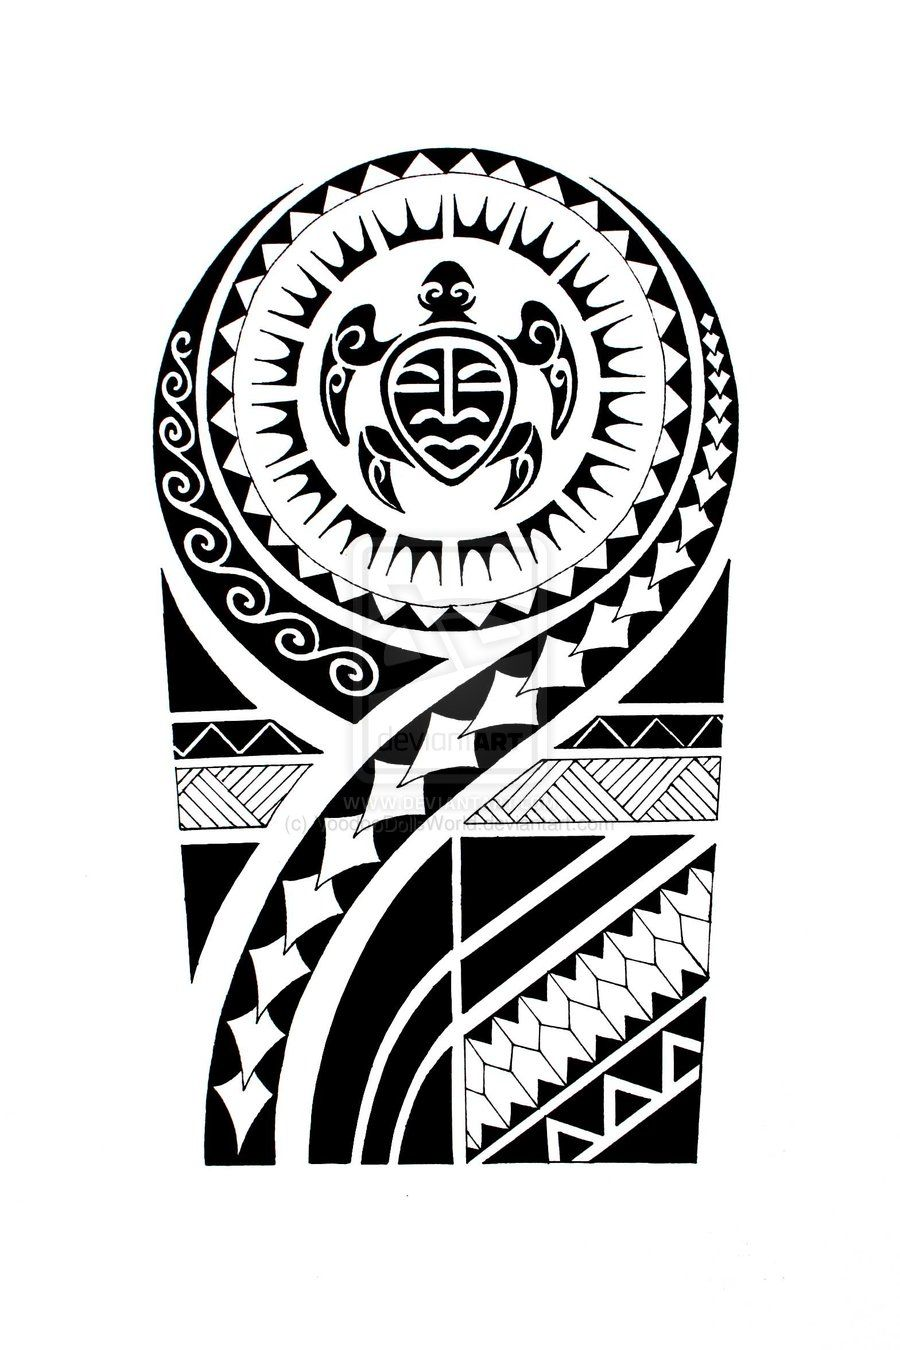 maori designs pesquisa google tattoo ideas pinterest maori designs maori and maori tattoos. Black Bedroom Furniture Sets. Home Design Ideas